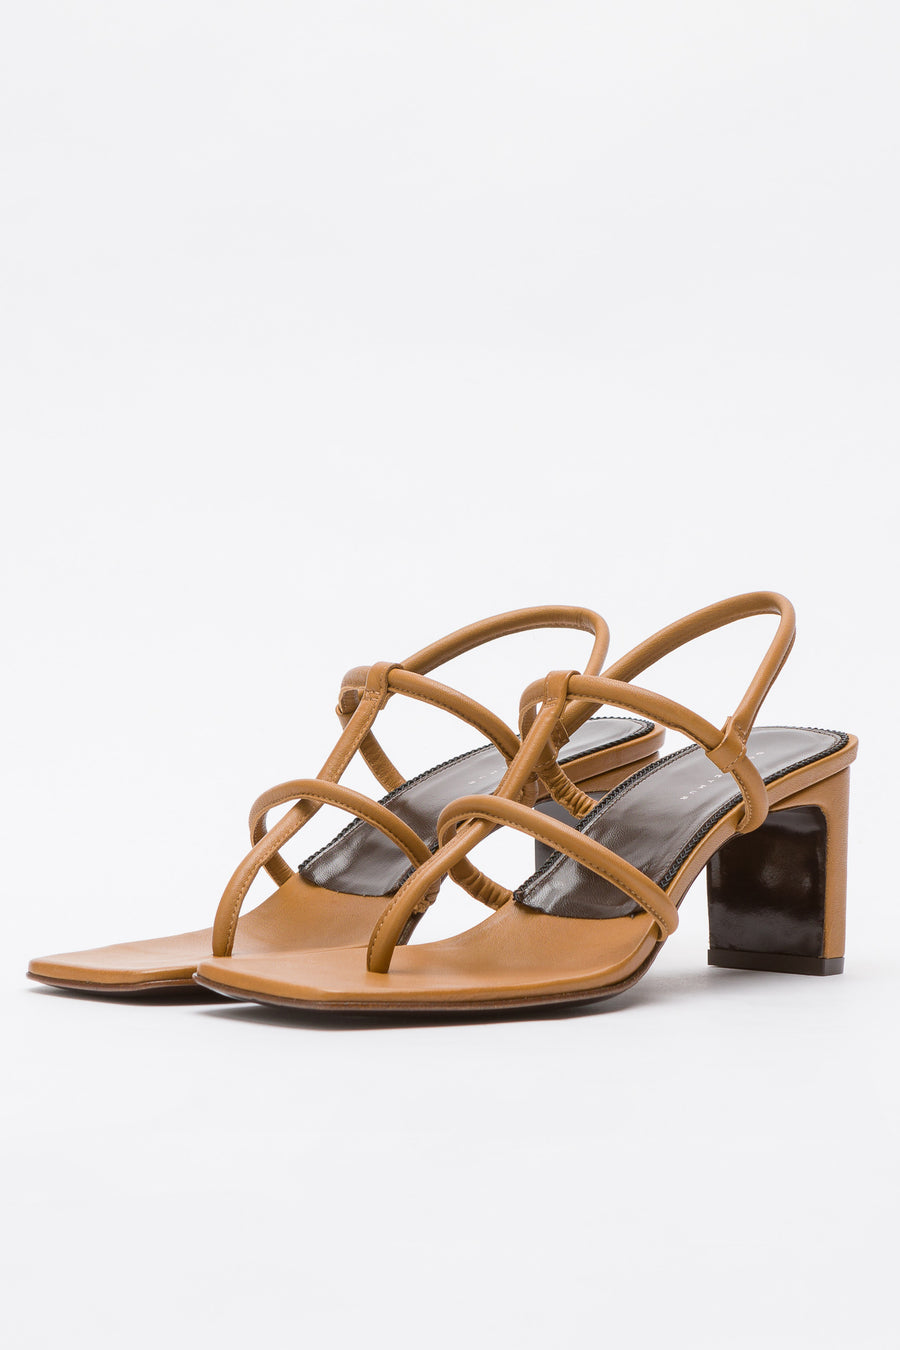 Dorateymur Thong Sandal in Caramel Leather - Notre